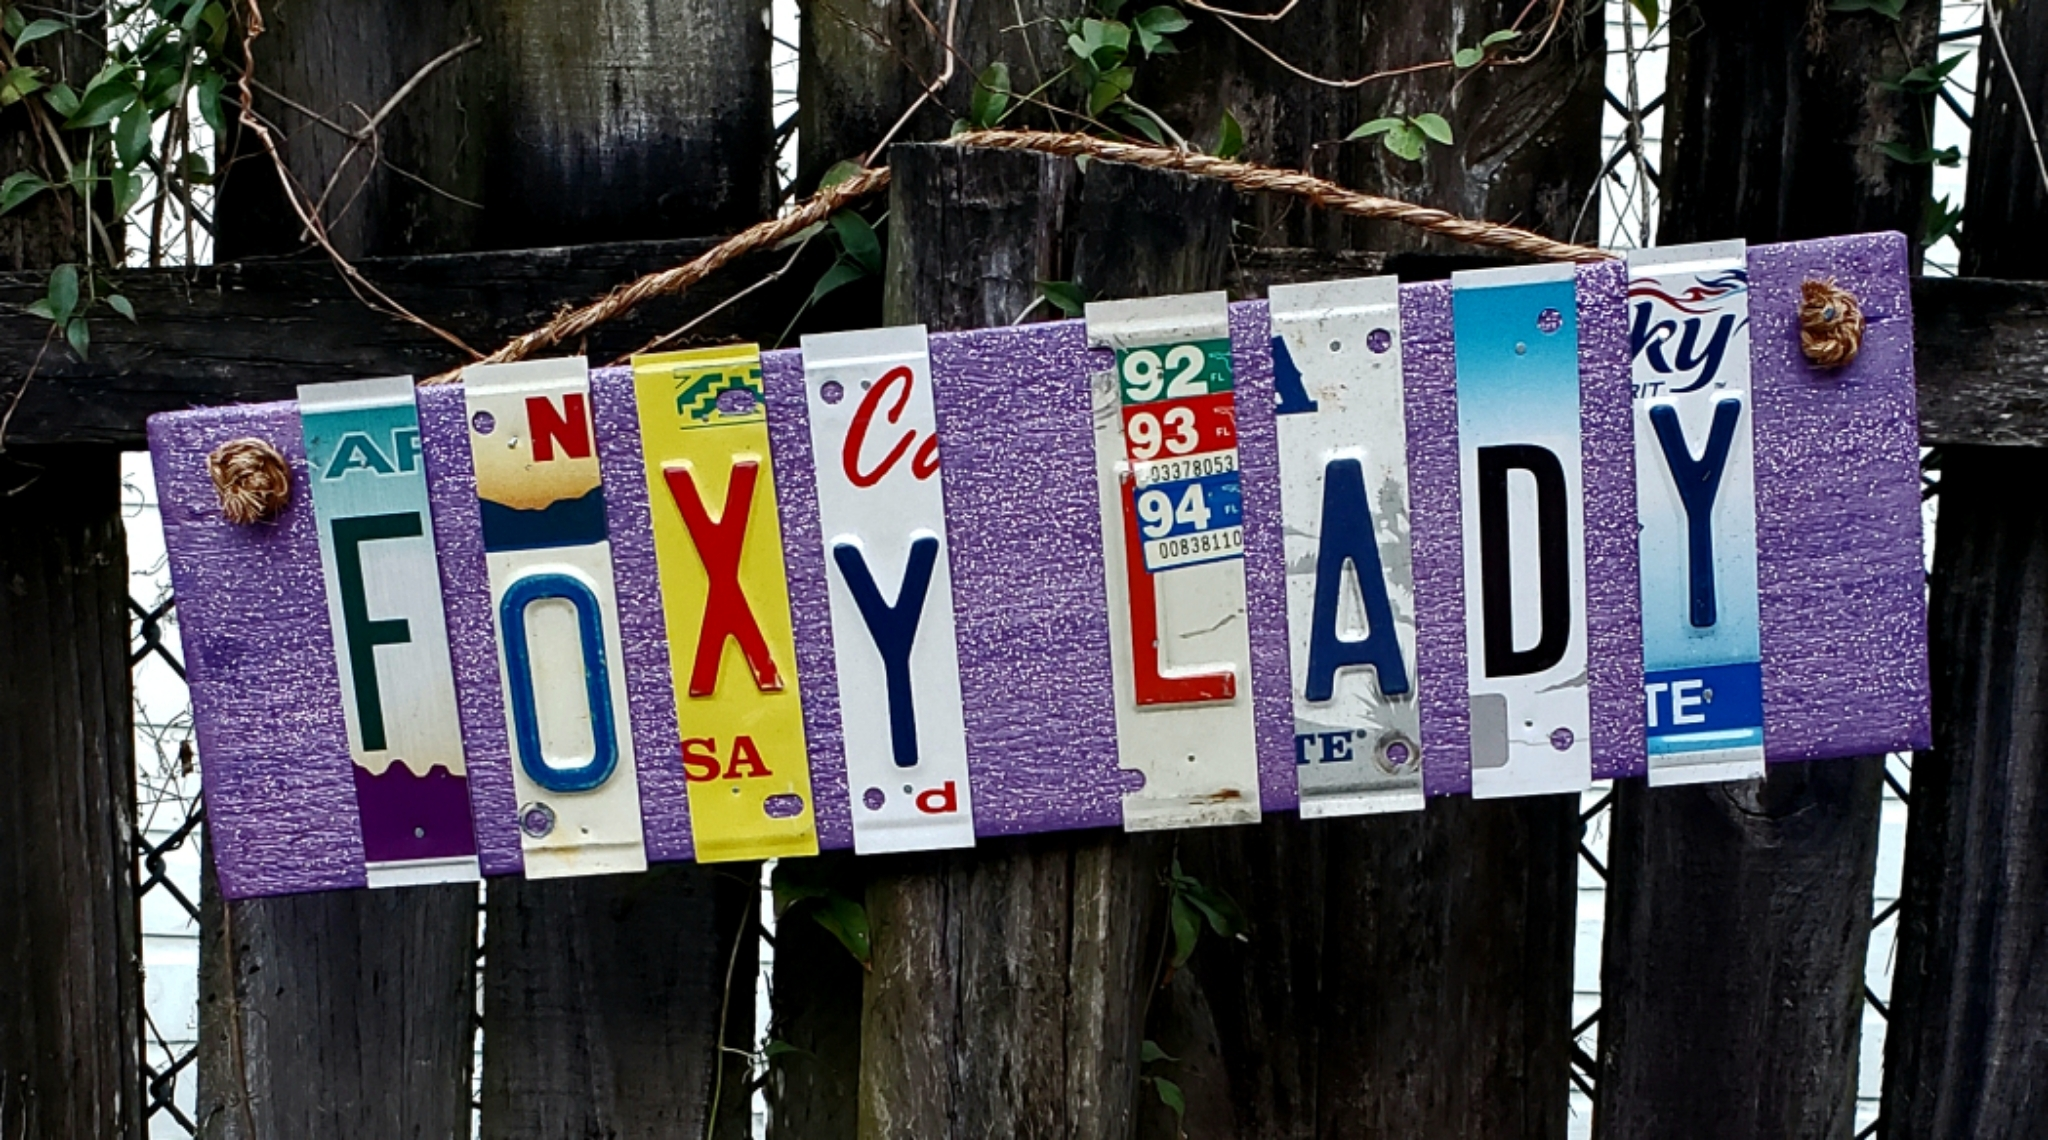 Foxy Lady license plate sign 00335